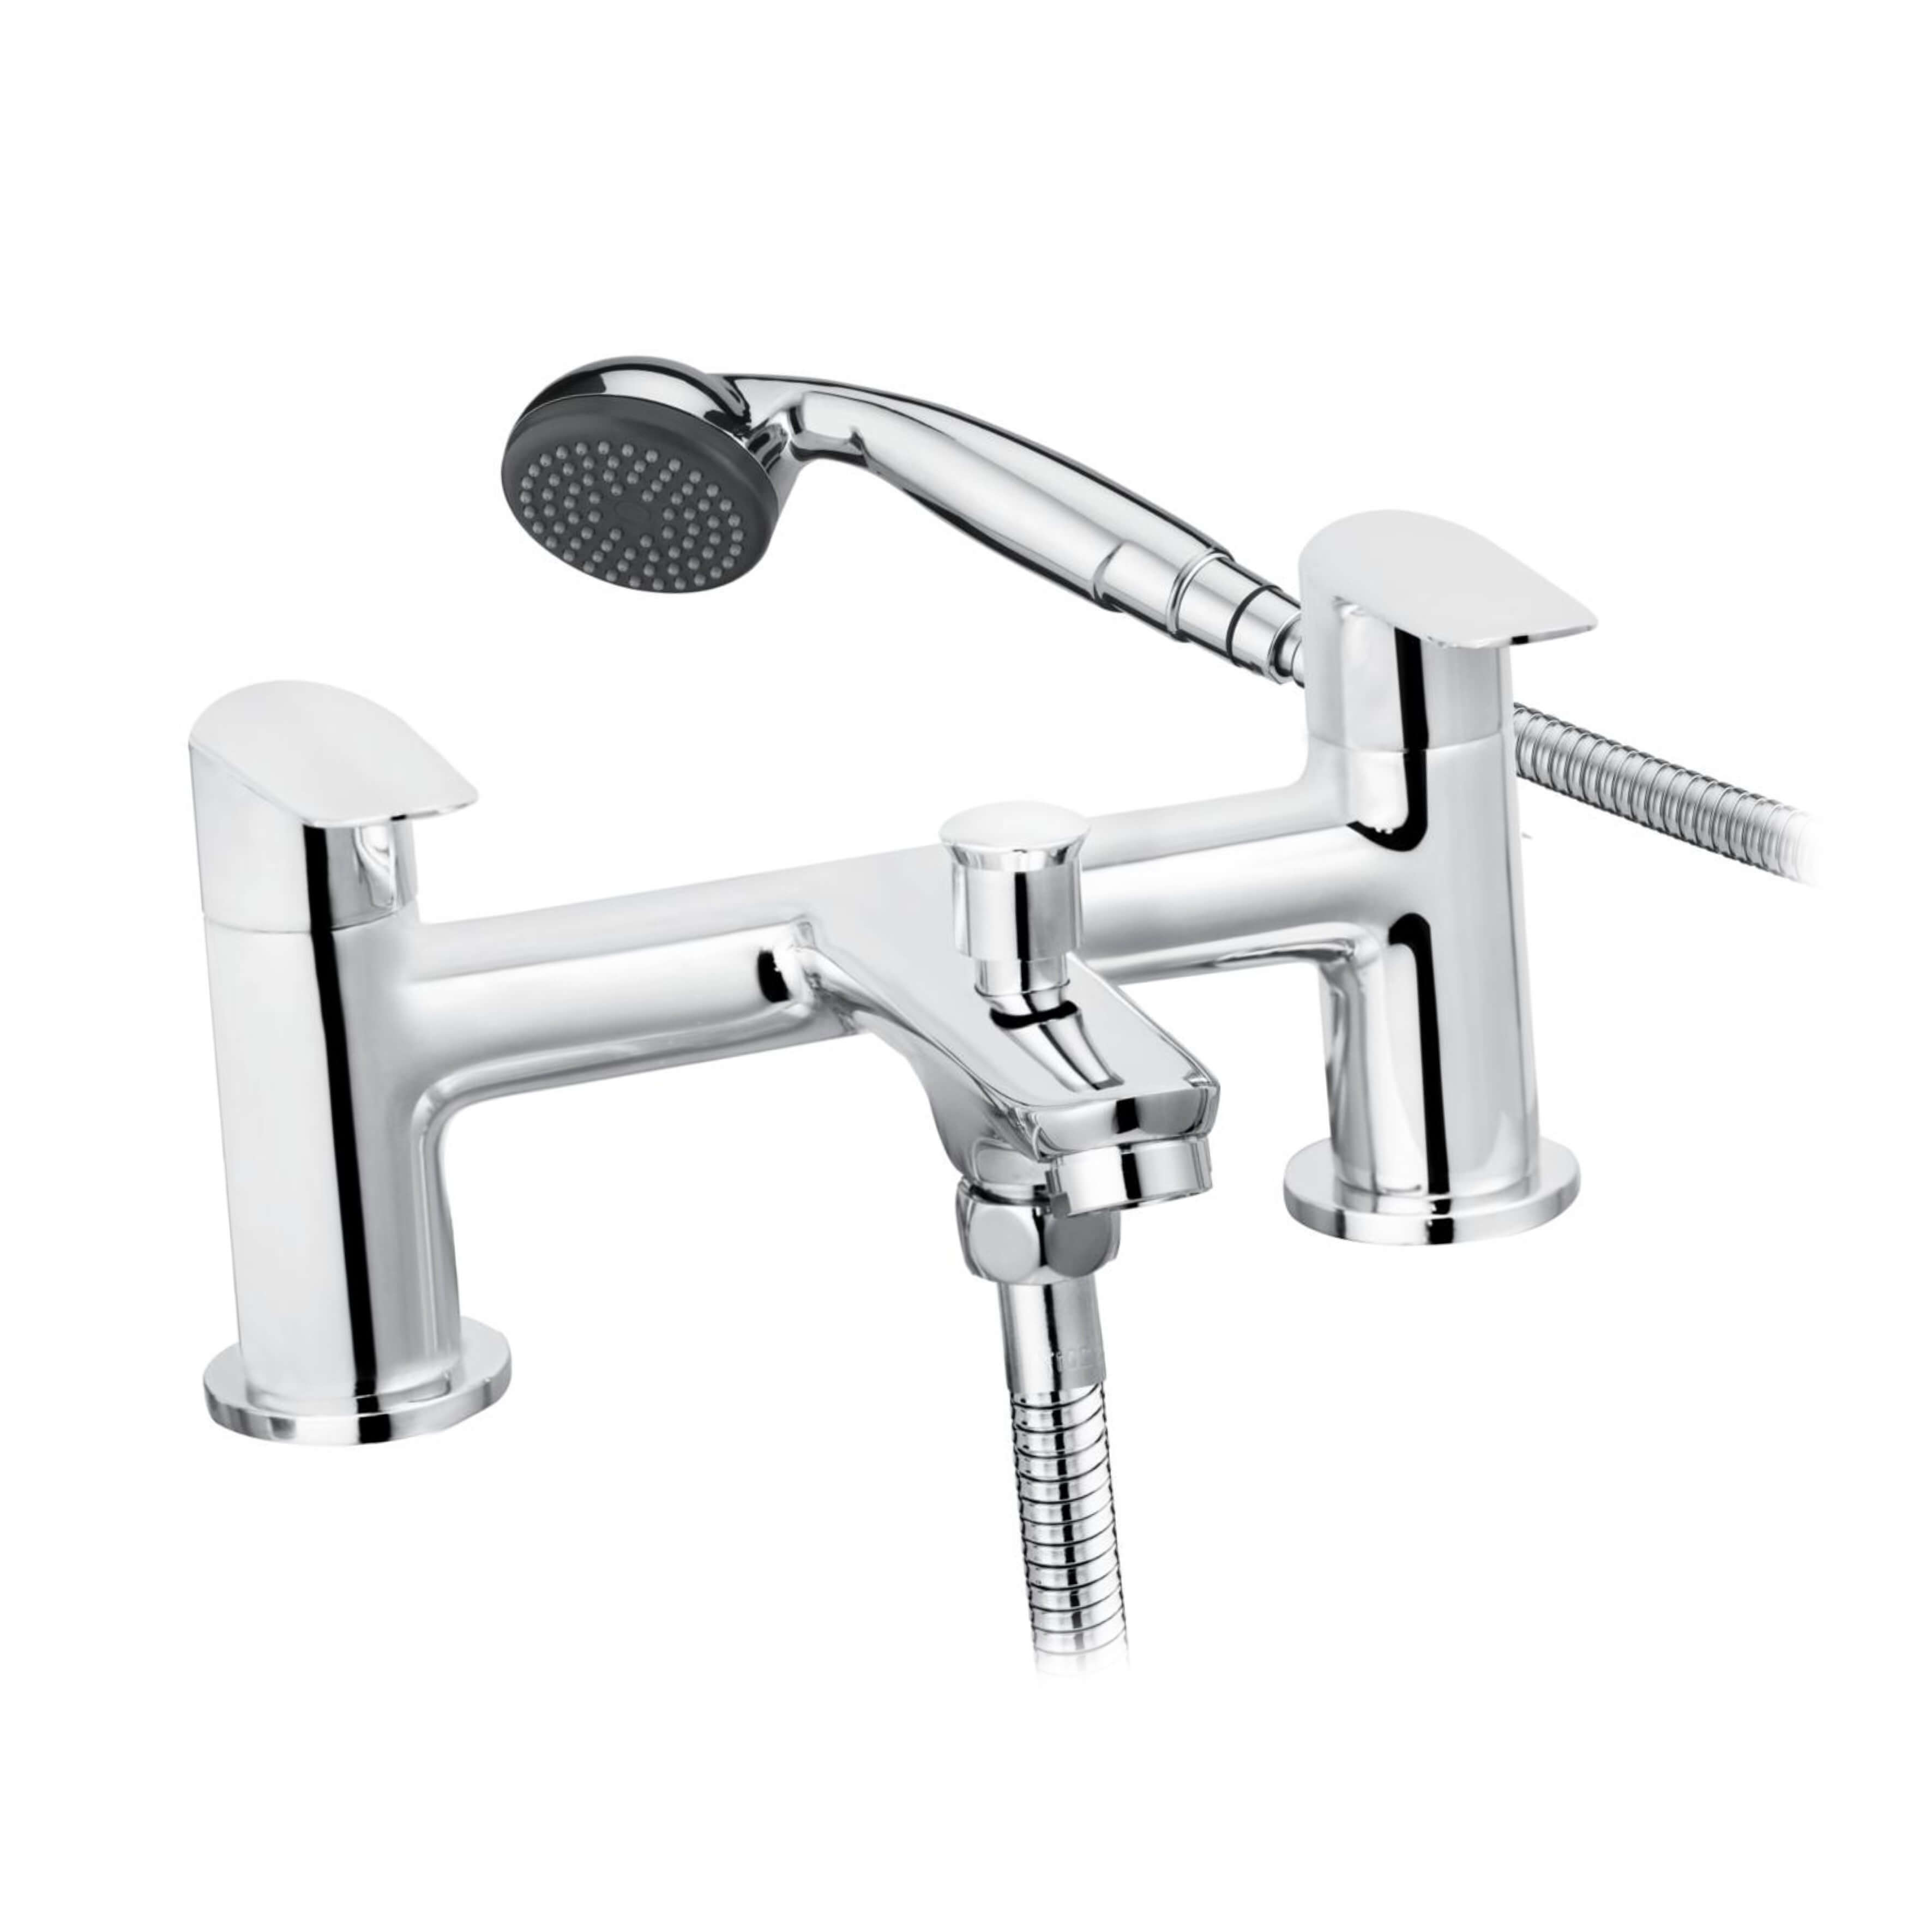 Cascade Compass Bath Shower Mixer Chrome 004.21913.3